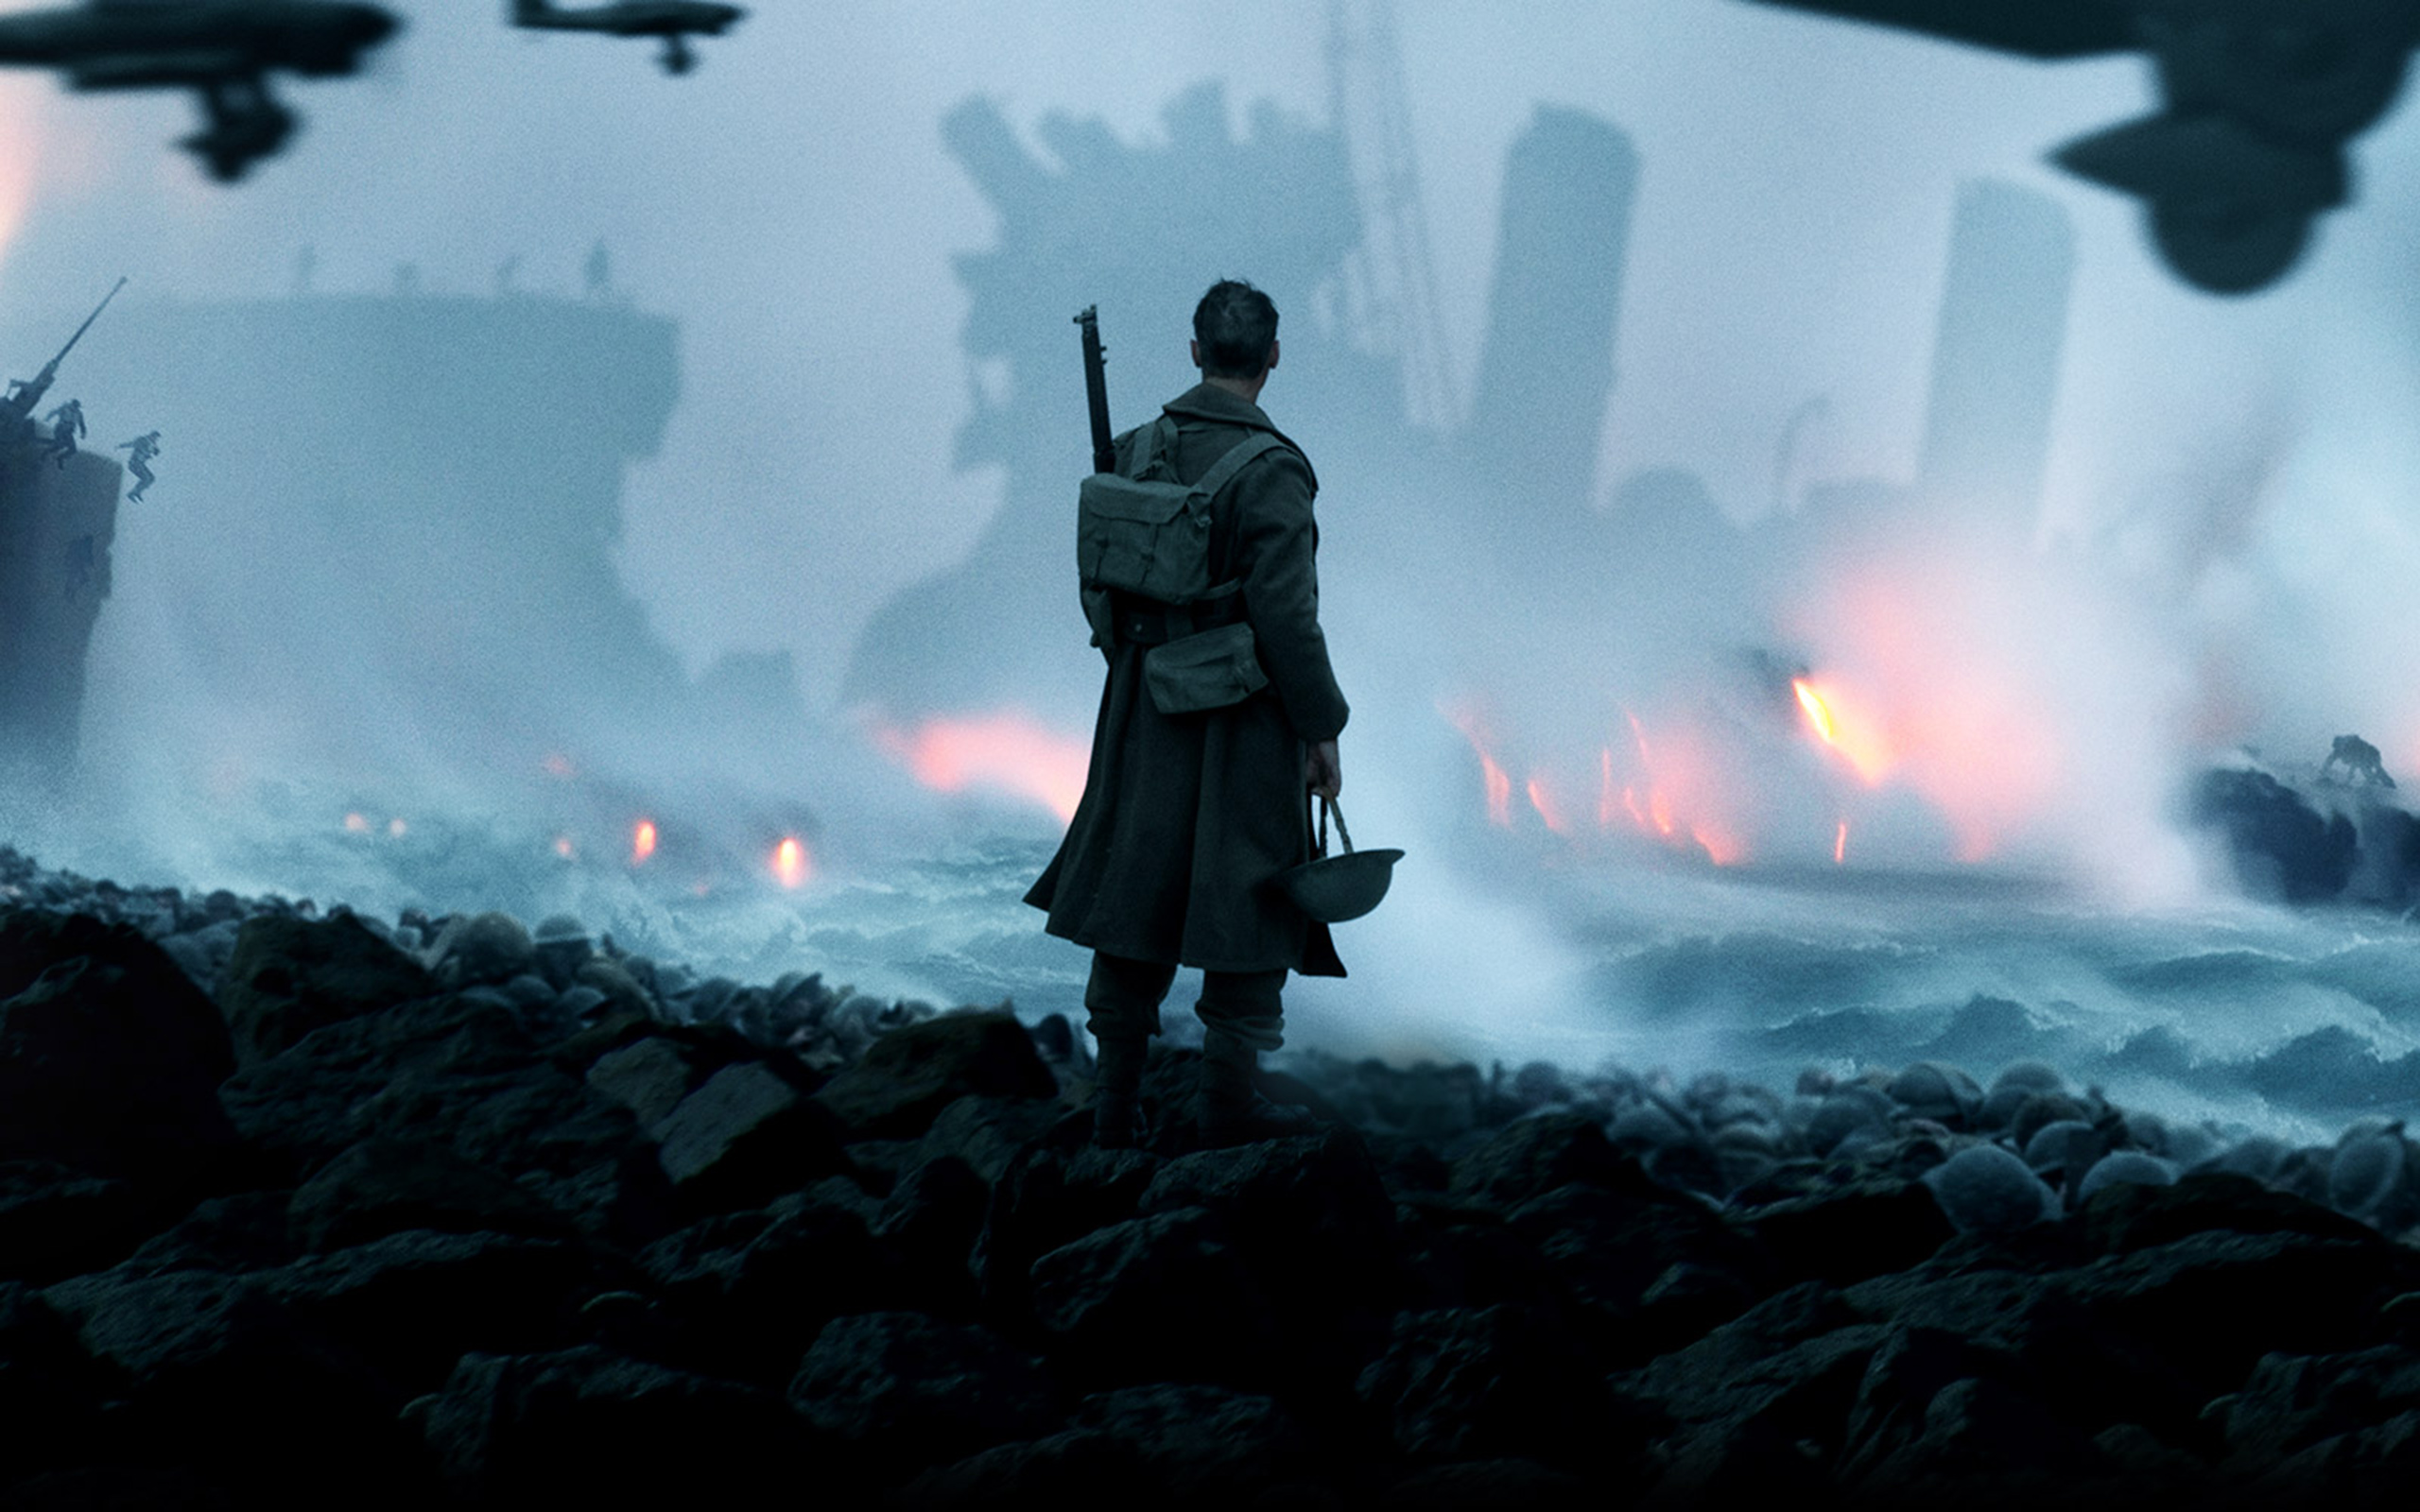 Wonder 2017 4k Movie Hd Movies 4k Wallpapers Images: Dunkirk 2017 Movie, HD Movies, 4k Wallpapers, Images